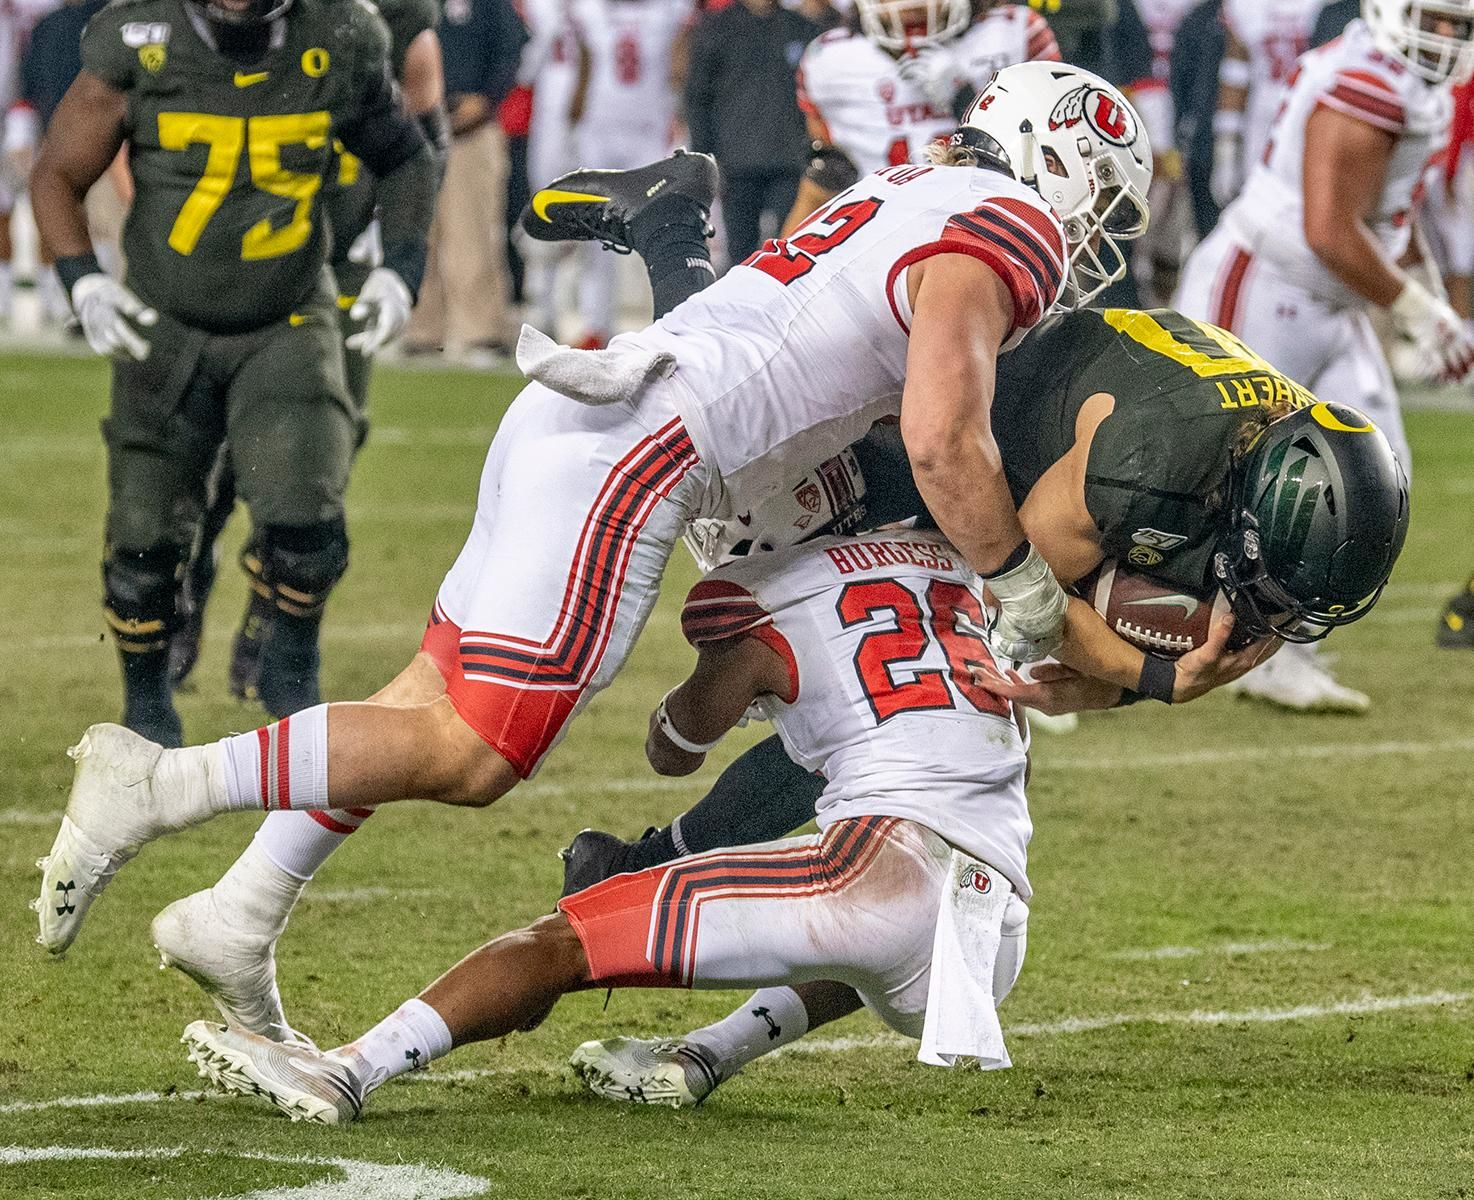 Utah's defensive tackle Mika Tafua, #42, and safety Terrell Burgess, #26, takes down Oregon's quarterback Justin Herbert, #10, after he tucks the ball in and run it for himself.  The University of Oregon Ducks defeated the University of Utah Utes 37-15 for the Pac 12 Championship Friday night at Levi's Stadium. Oregon's running back CJ Verdell, #7, rushed for 203 all-purpose yard along with three touchdowns for the night. Verdell was named the games M-V-P for his performace. Oregon's safey Brady Breeze, #25, contributed 9 tackles and one interception. Oregon's defensive end Kayvon Thibodeaux, #5, sacked Utah's quarterback Tyler Huntly, #1, for a total of three times. Oregon's quarterback Justin Herbert, #10, passed for 193 yards with one touchdown. The Oregon Ducks will represent the Pac 12 for the upcoming Rose Bowl game in the new year. Photo by Jeffrey Price